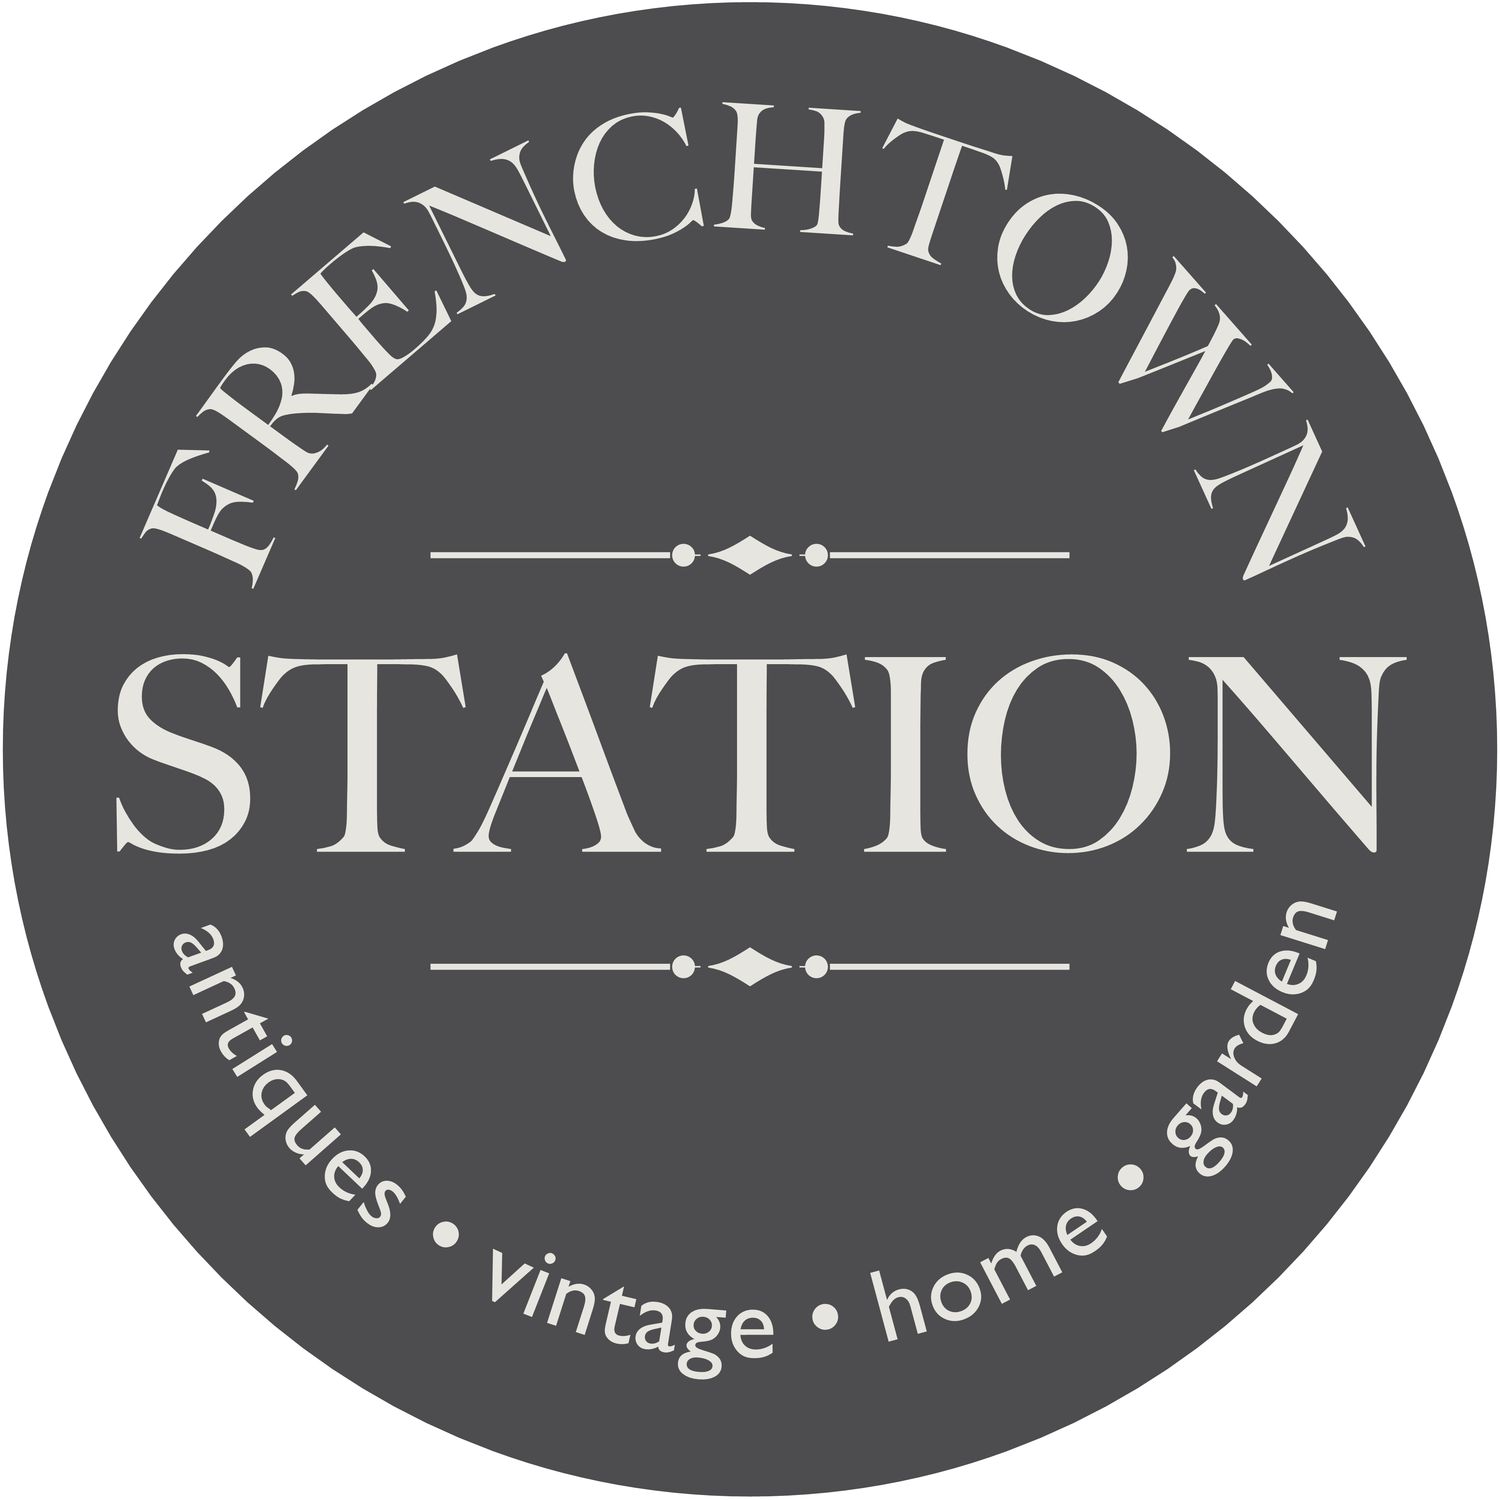 Frenchtown Station